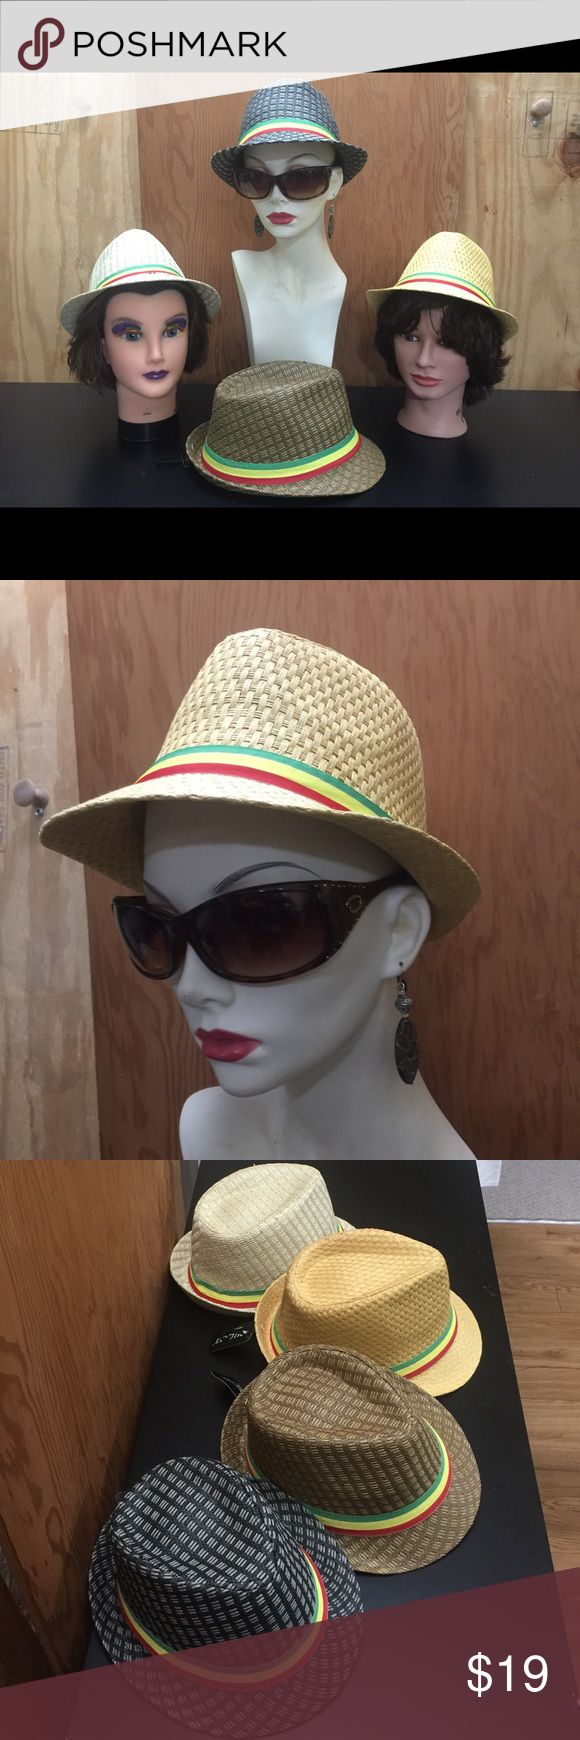 Rasta Fedora Hat Elegant unisex Rasta Fedora hat 🎩 light weight & making a statement without a word. For them lazy, hazy days of summer. Designed in Italy 🇮🇹 Rasta style two tone, 100% Straw Fedora. Check out other colors and sizes in my closet. (Beige) Milani Accessories Hats